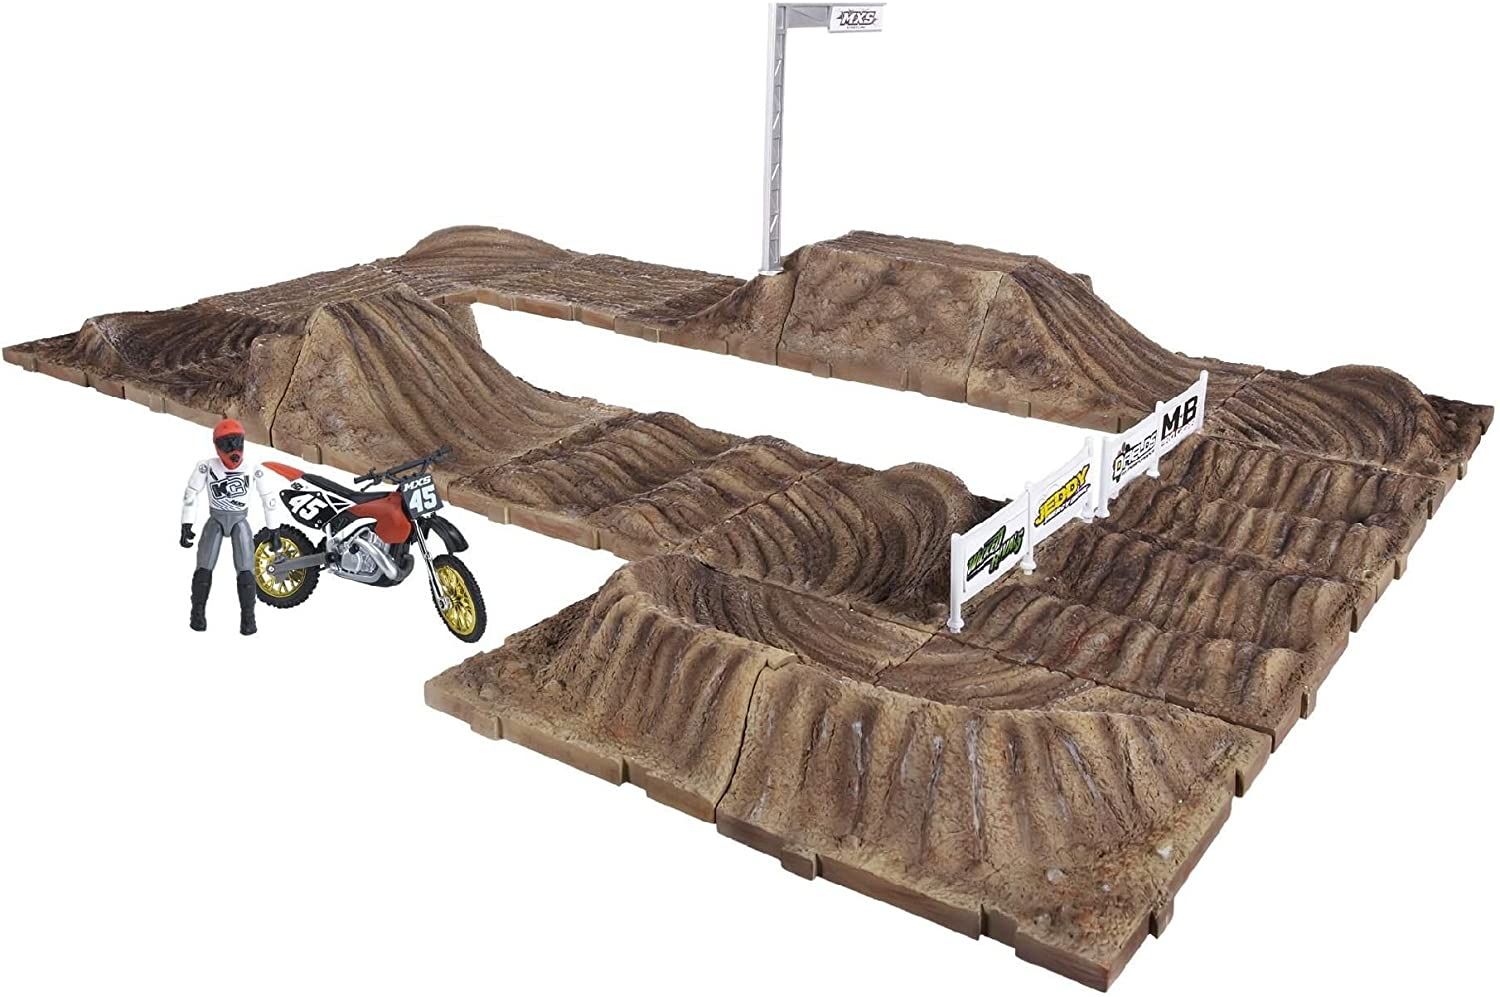 Mxs Motocross Dirt Bike Race Track Playsets Amazon Canada